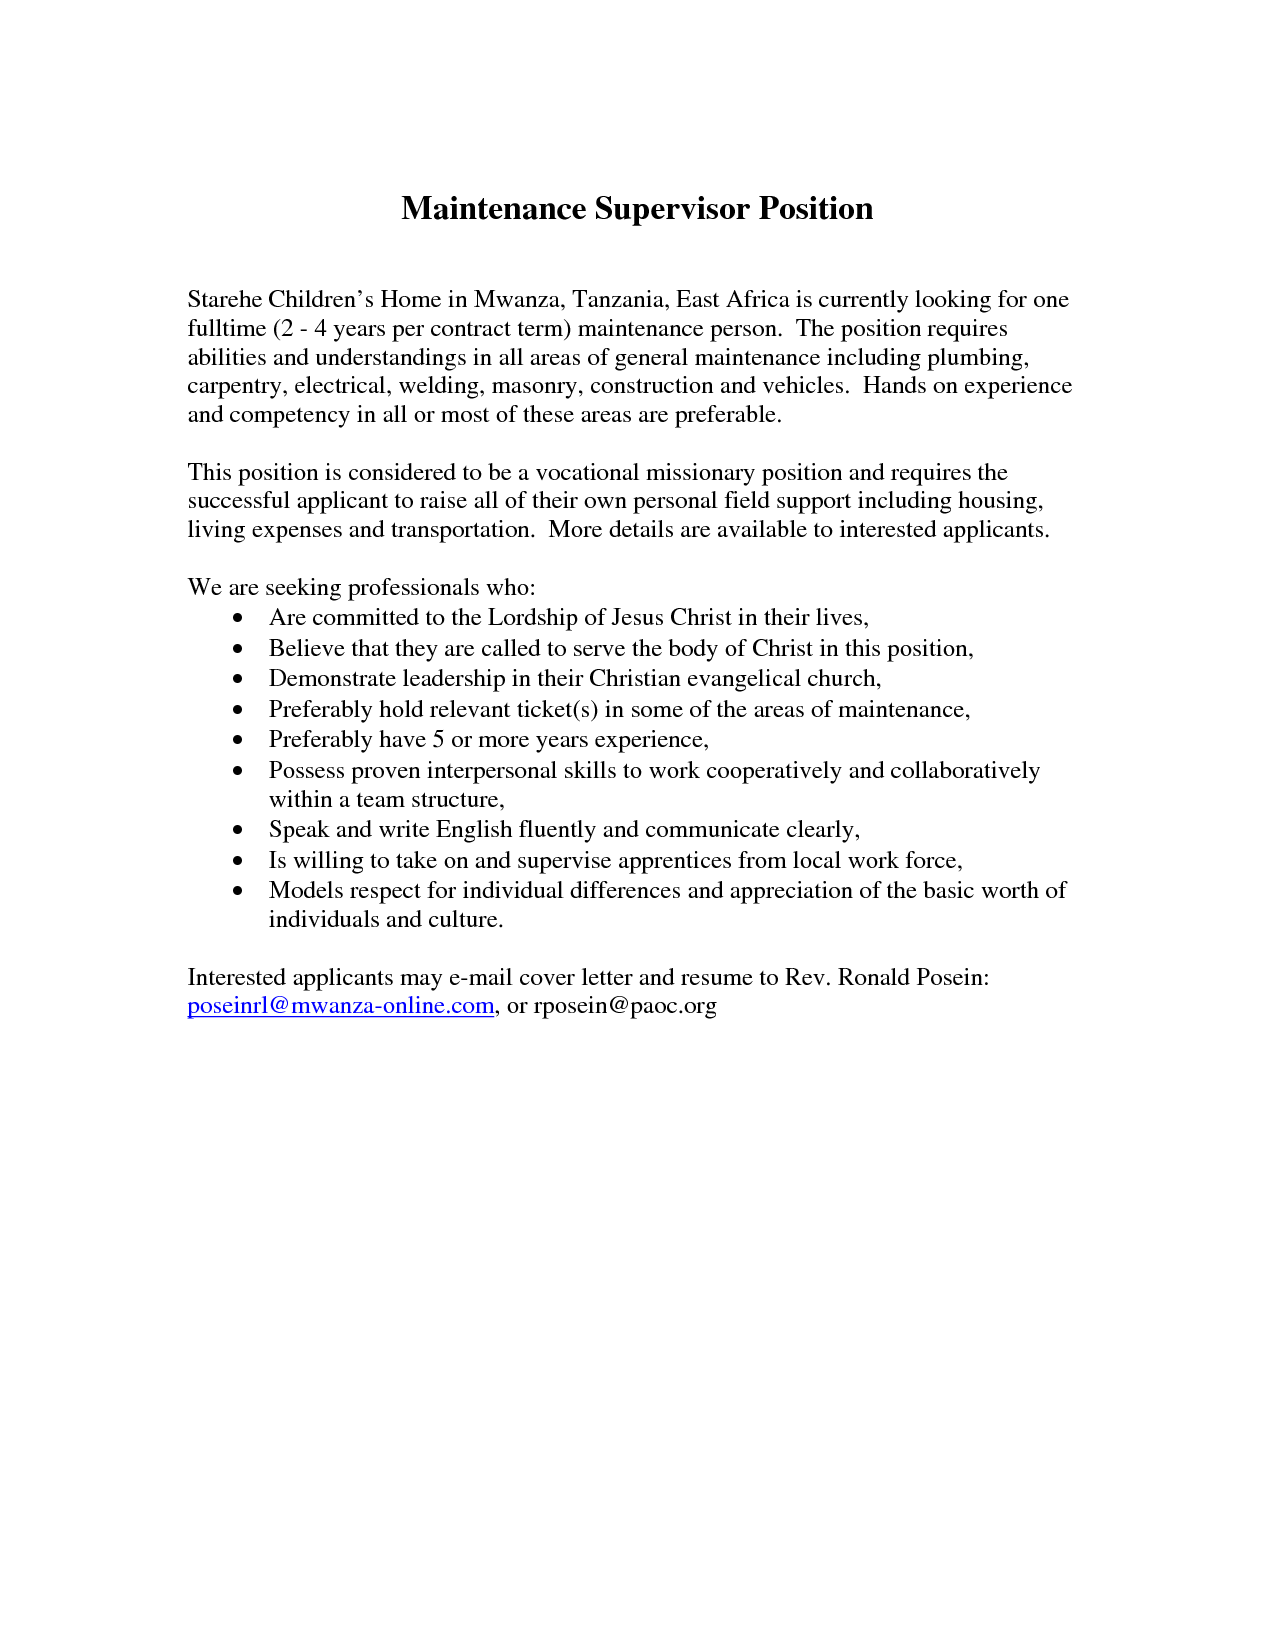 Cover Letter For Supervisor Resume Housekeeping Position Email